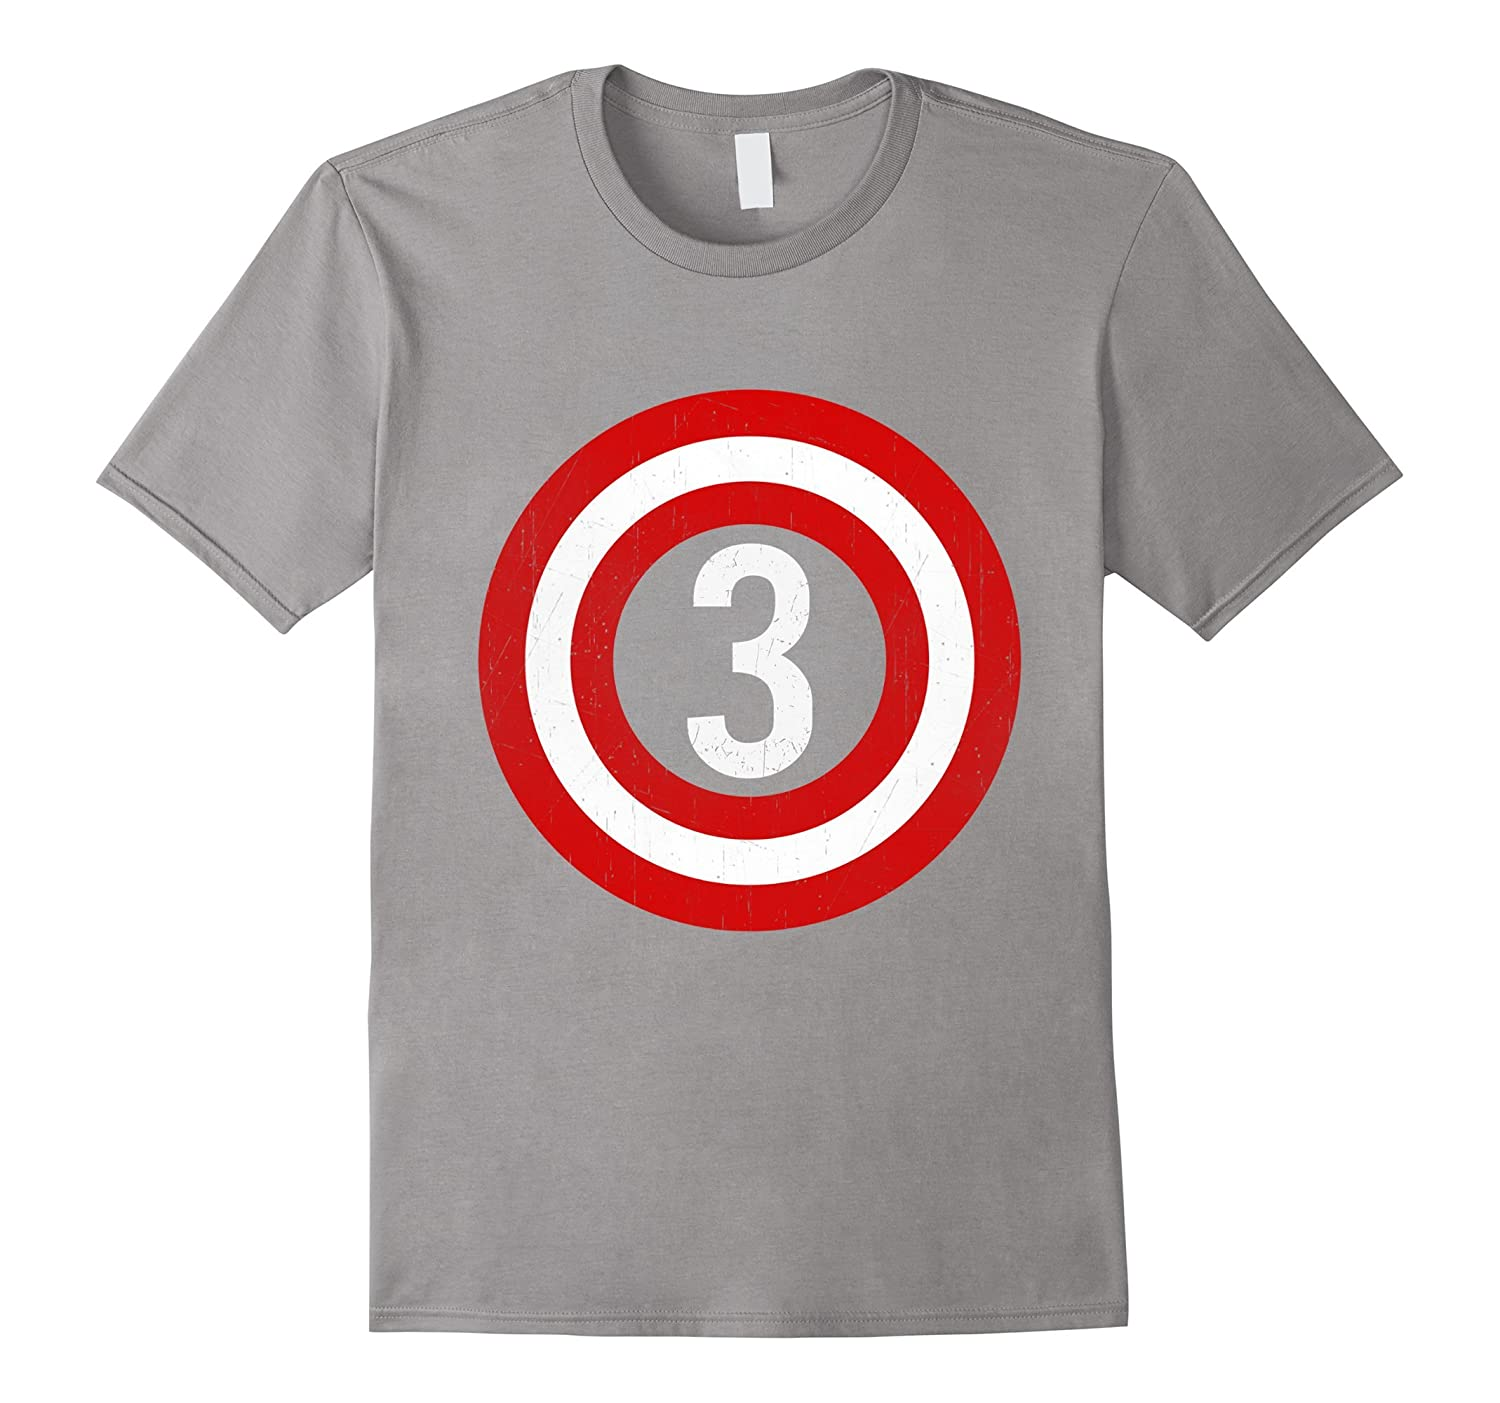 Captain 3rd Birthday Tshirt Gift 3 Years Old Toddler Kids CL